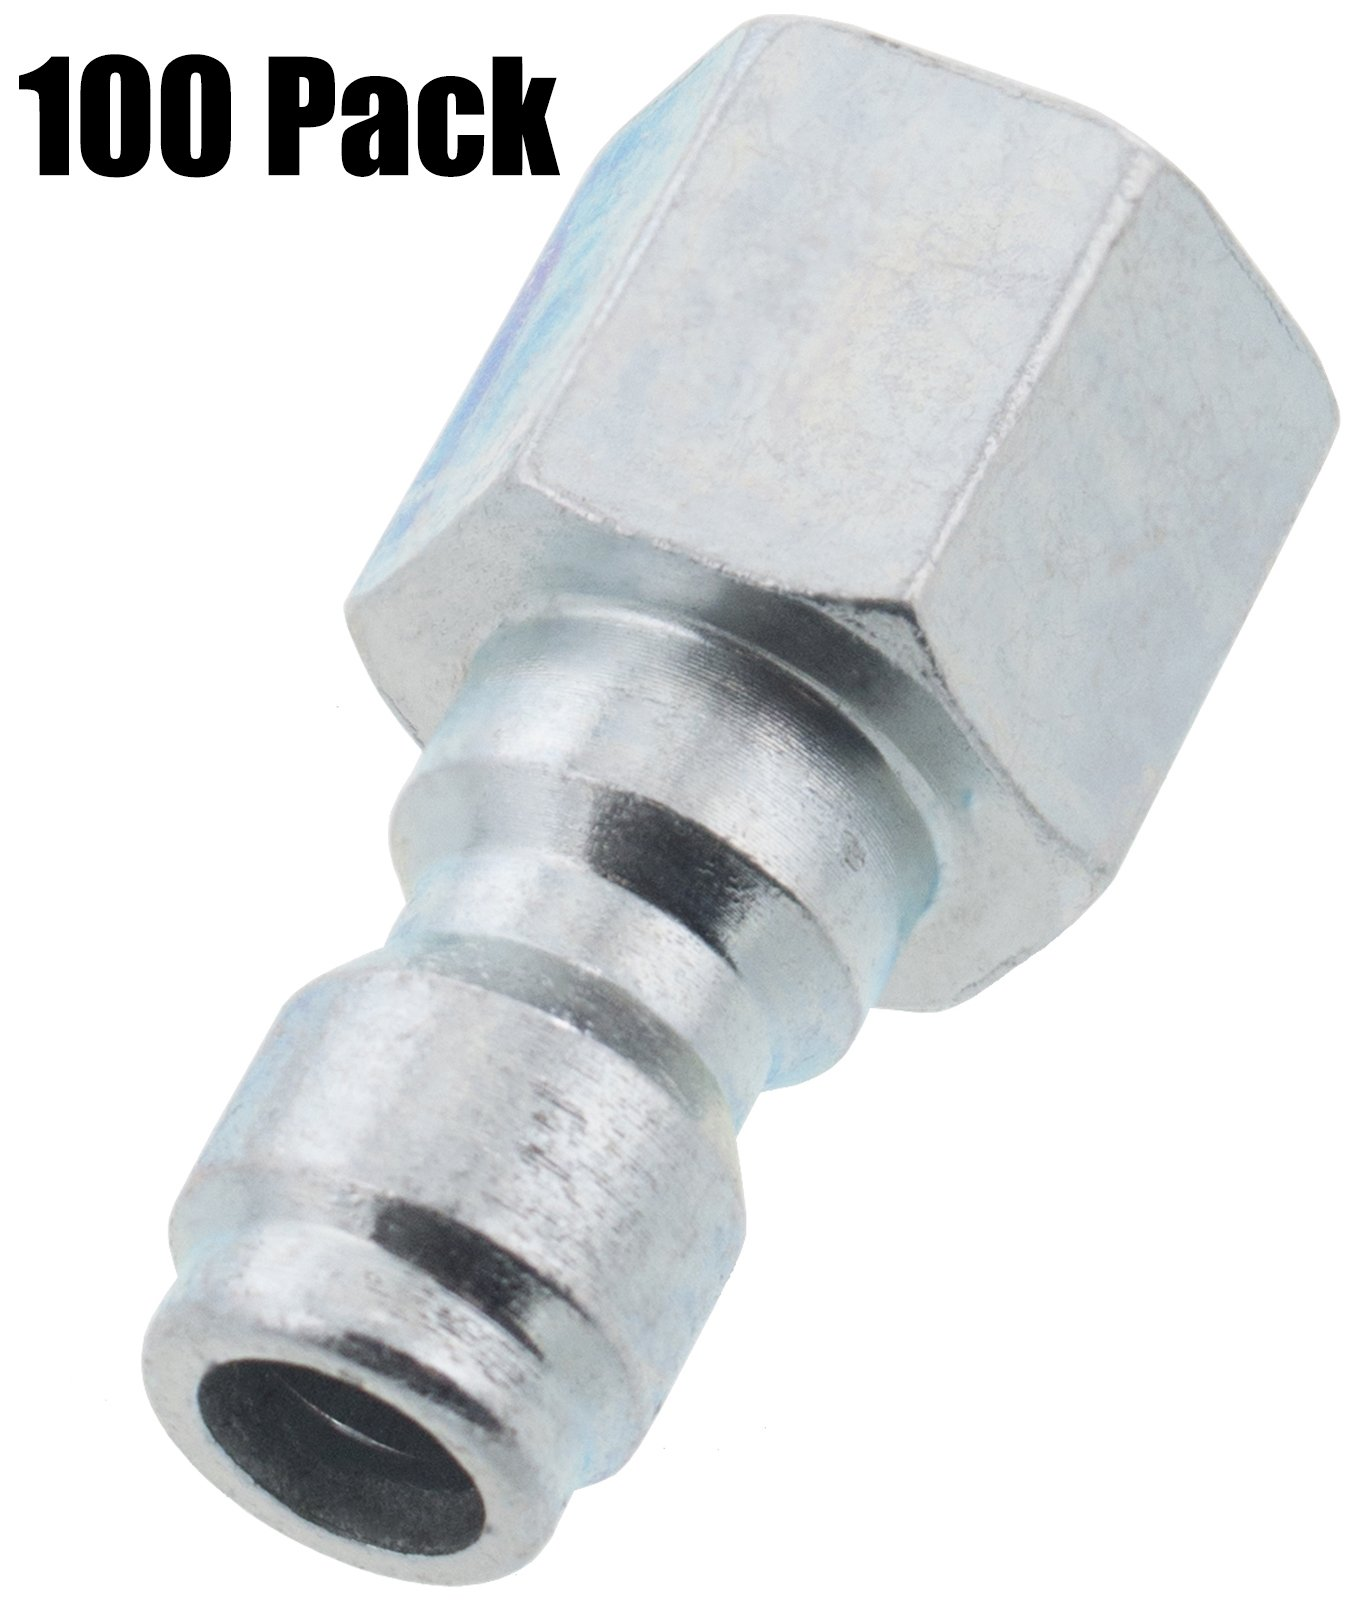 Erie Tools 100 1/4in. FPT Female Zinc Plated Steel Plug Quick Connect Coupler 4000 PSI 10 GPM for Pressure Washer Gun Hose Wand Nozzle by Erie Tools